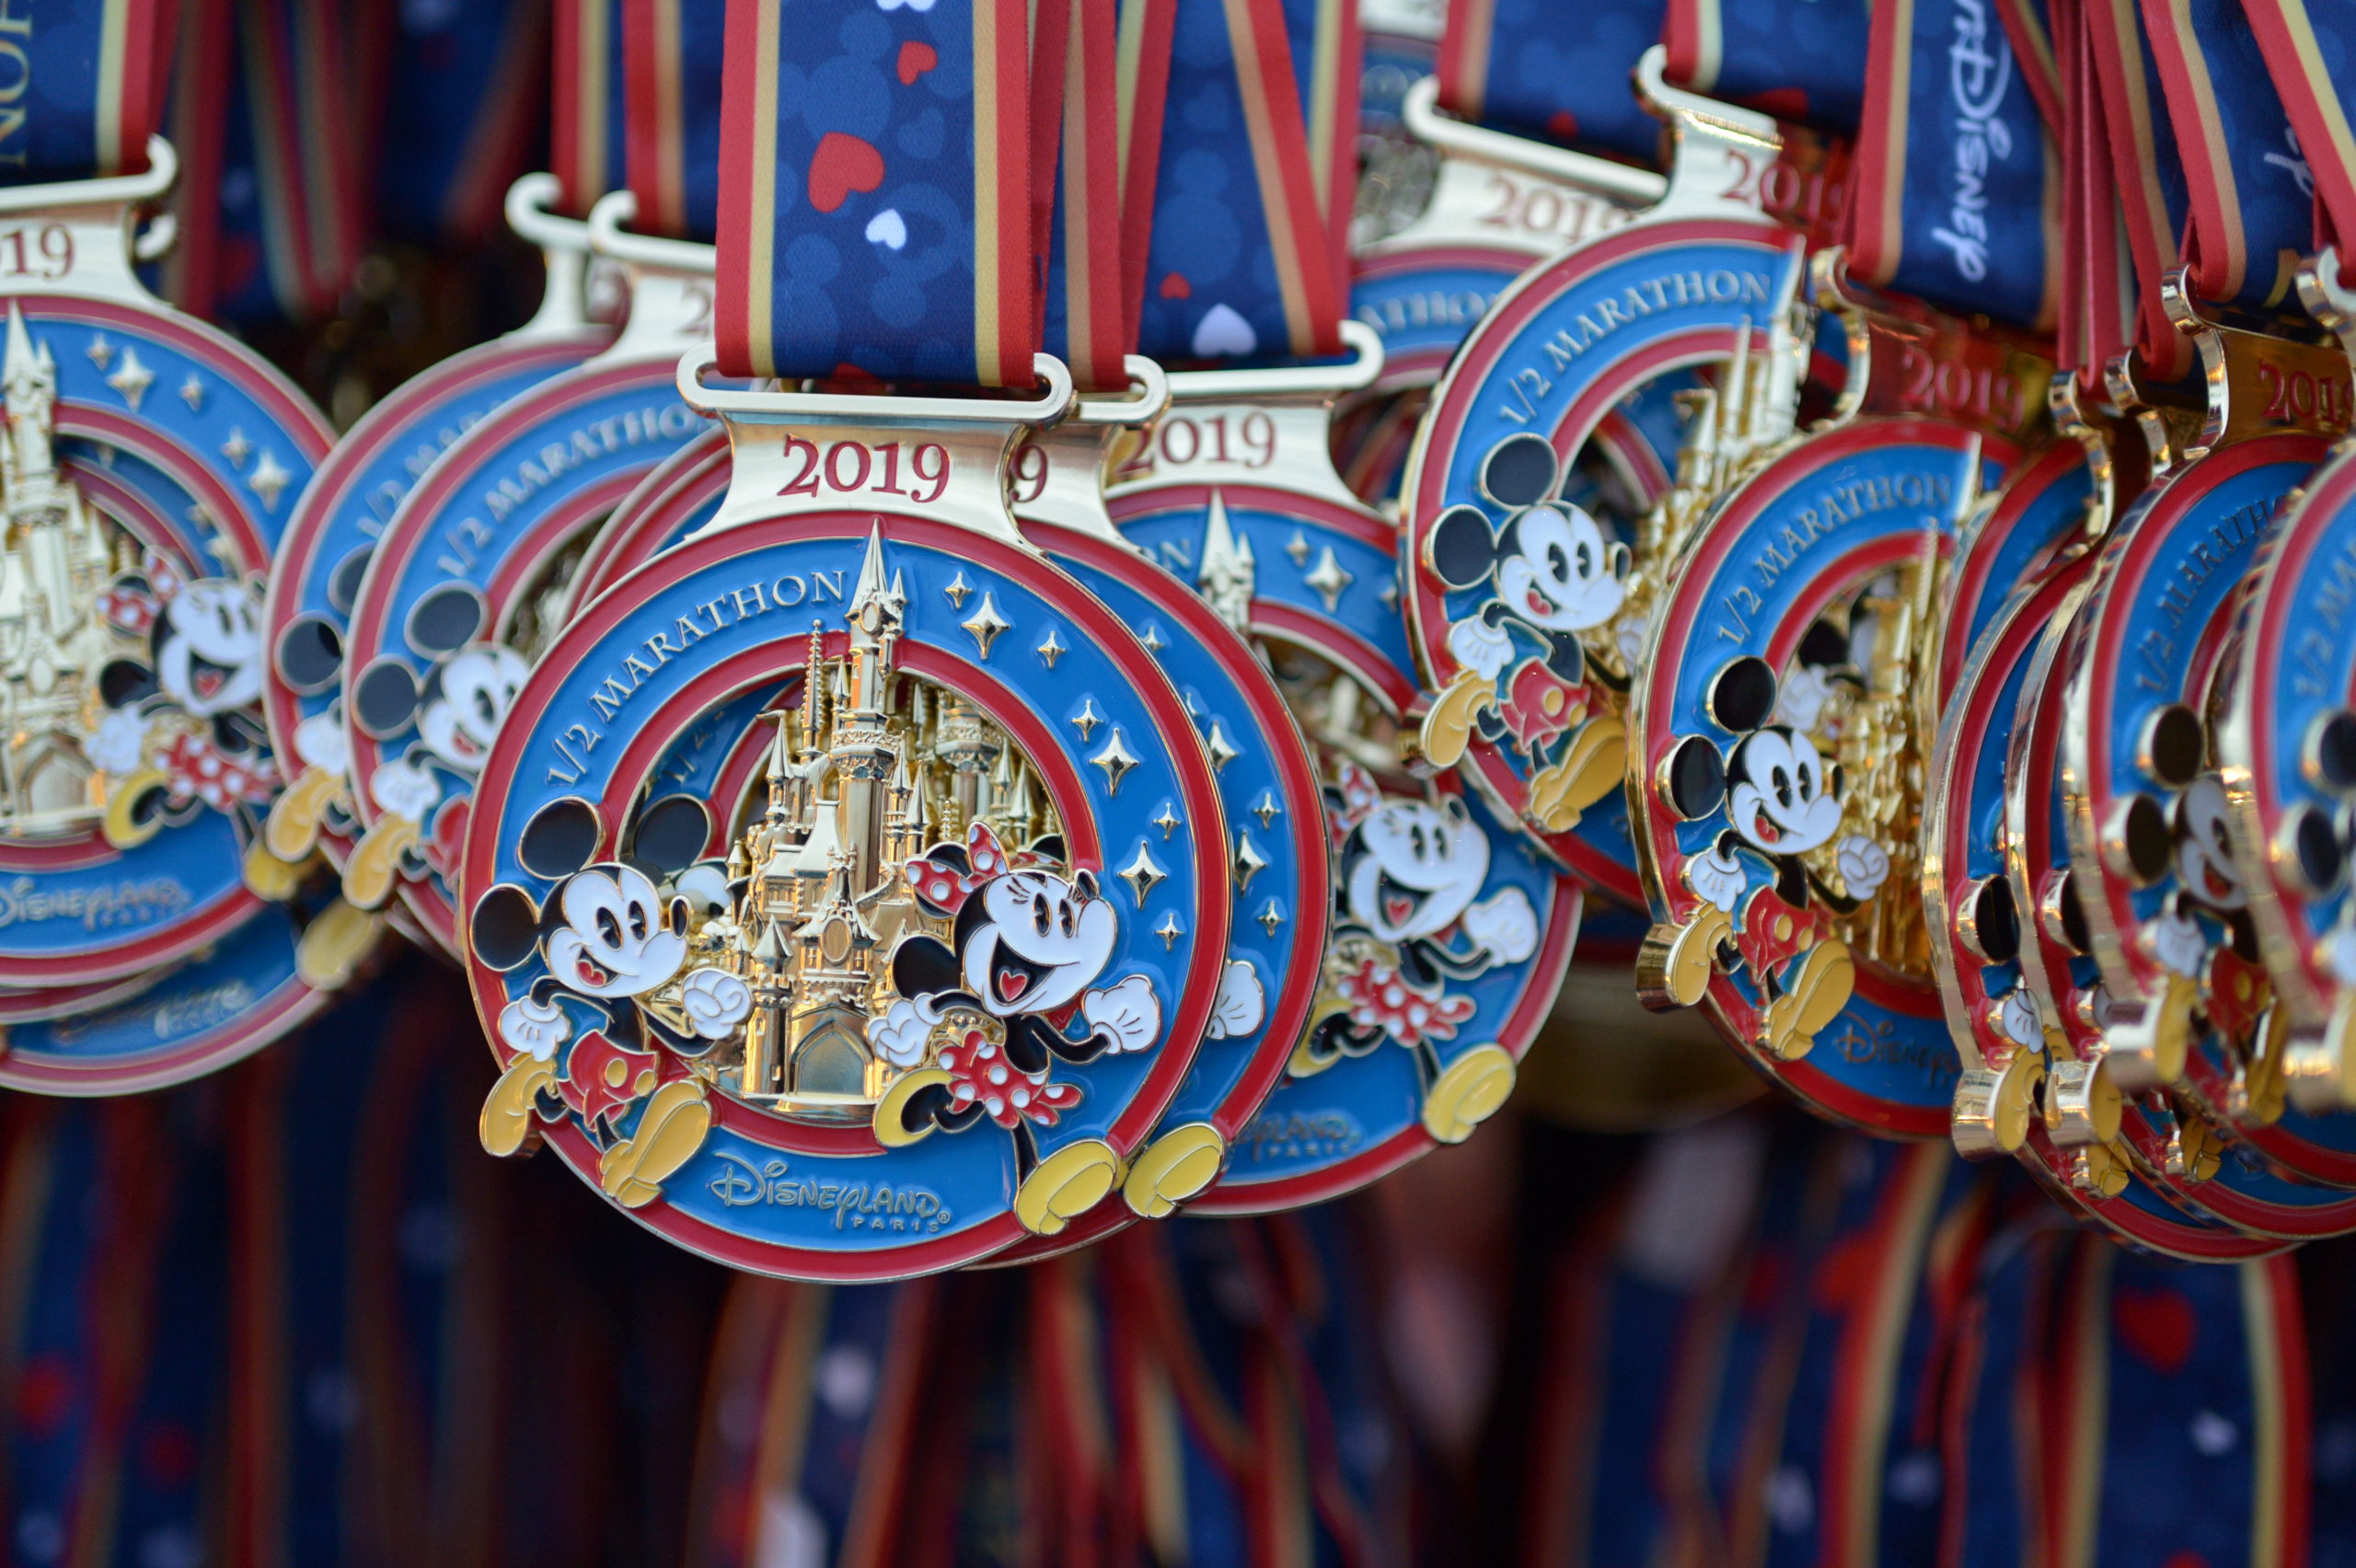 2019 - Disneyland Paris Run Weekend - Pagina 3 21k_610